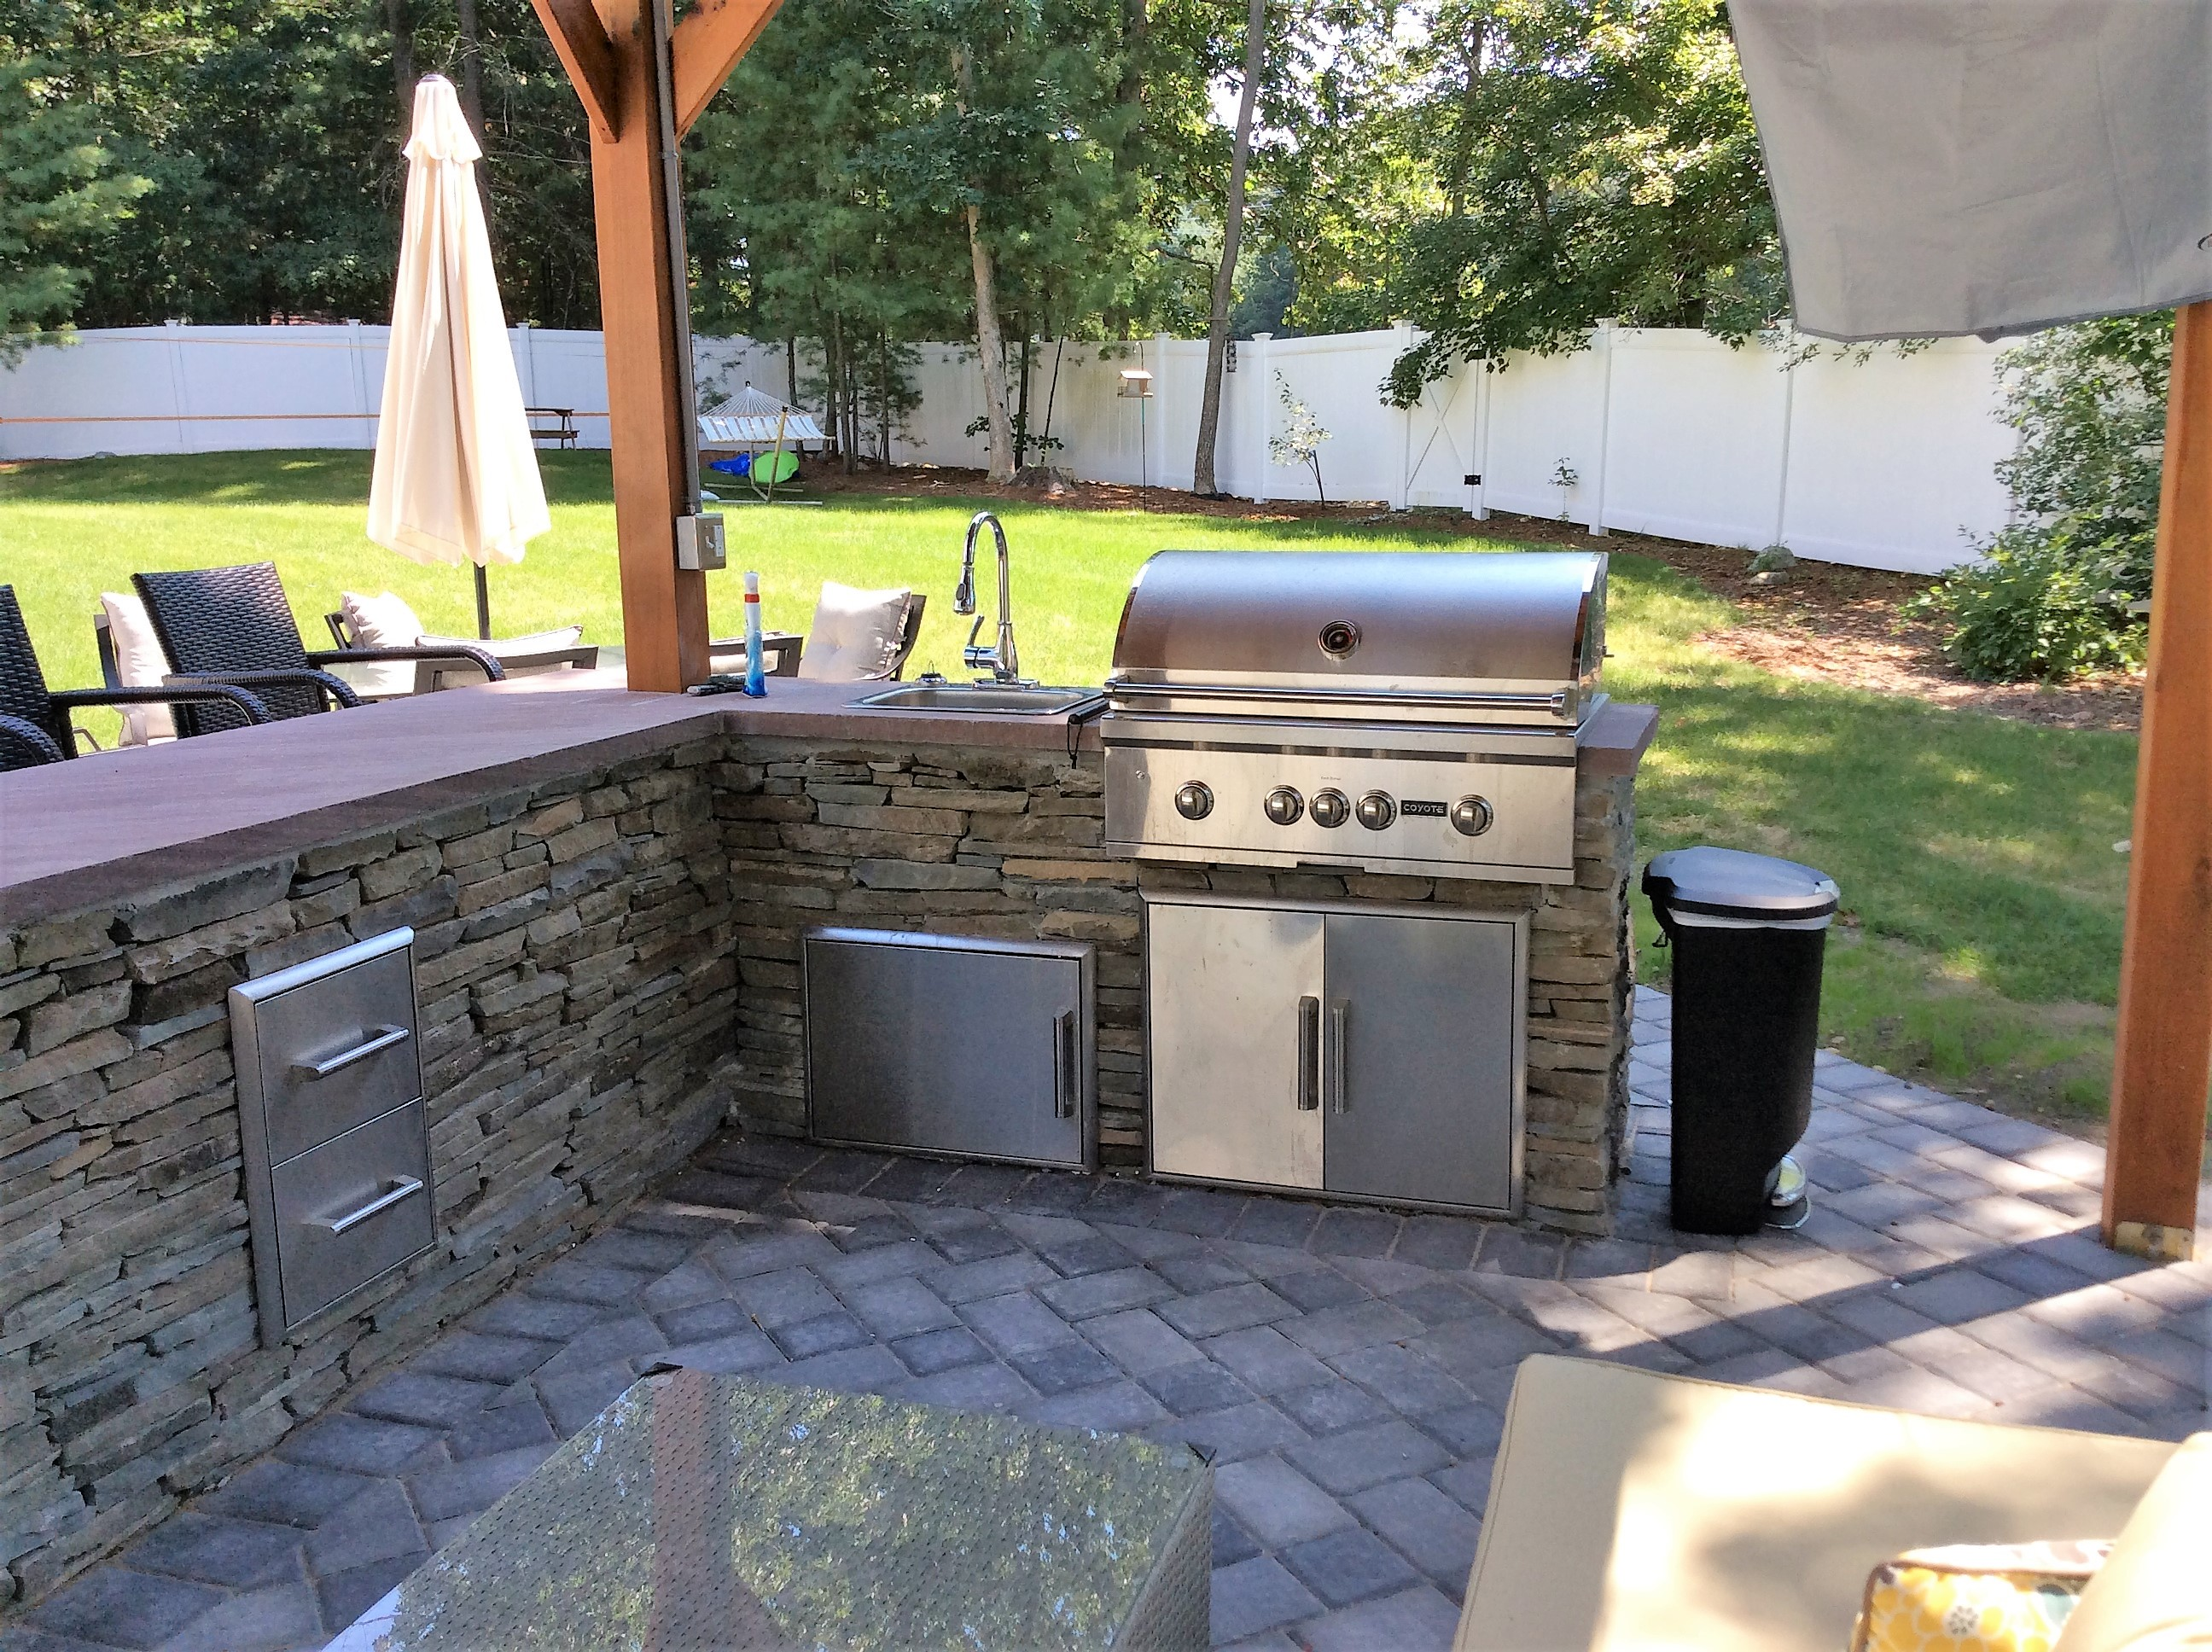 Outdoor kitchens make for the perfect spot to BBQ and entertain.